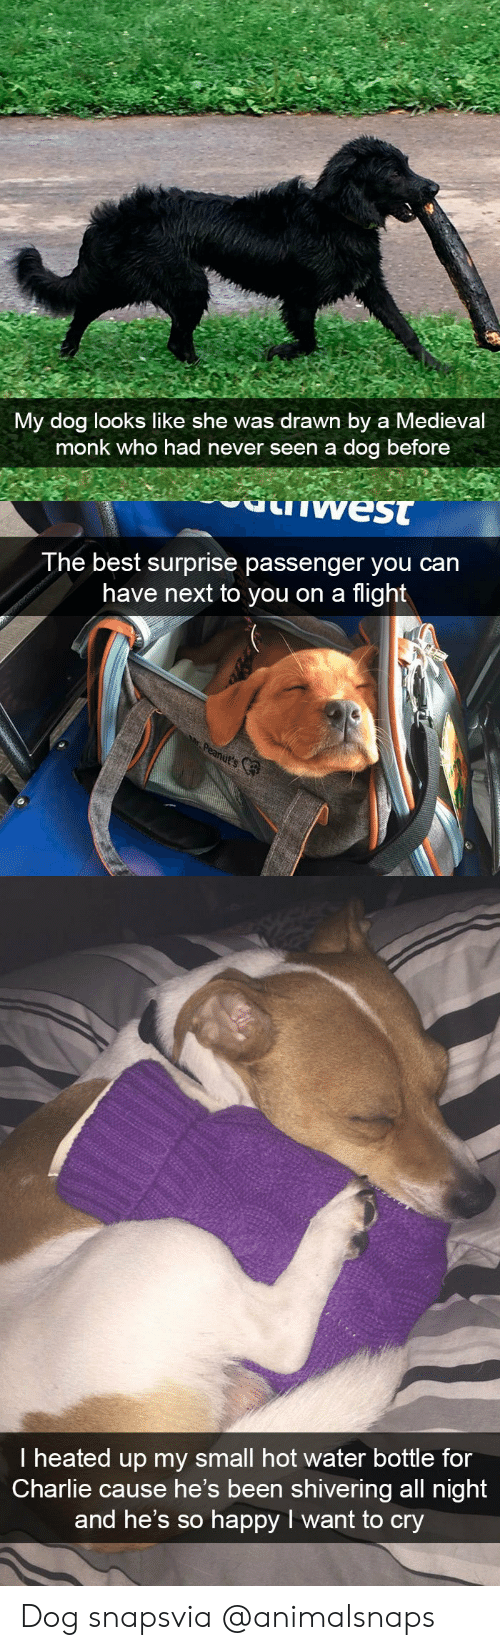 Charlie, Target, and Tumblr: My dog looks like she was drawn by a Medieval  monk who had never seen a dog before   west  The best surprise passenger you can  have next to you on a flight   I heated up my small hot water bottle for  Charlie cause he's been shivering all night  and he's so happy I want to cry Dog snapsvia @animalsnaps​